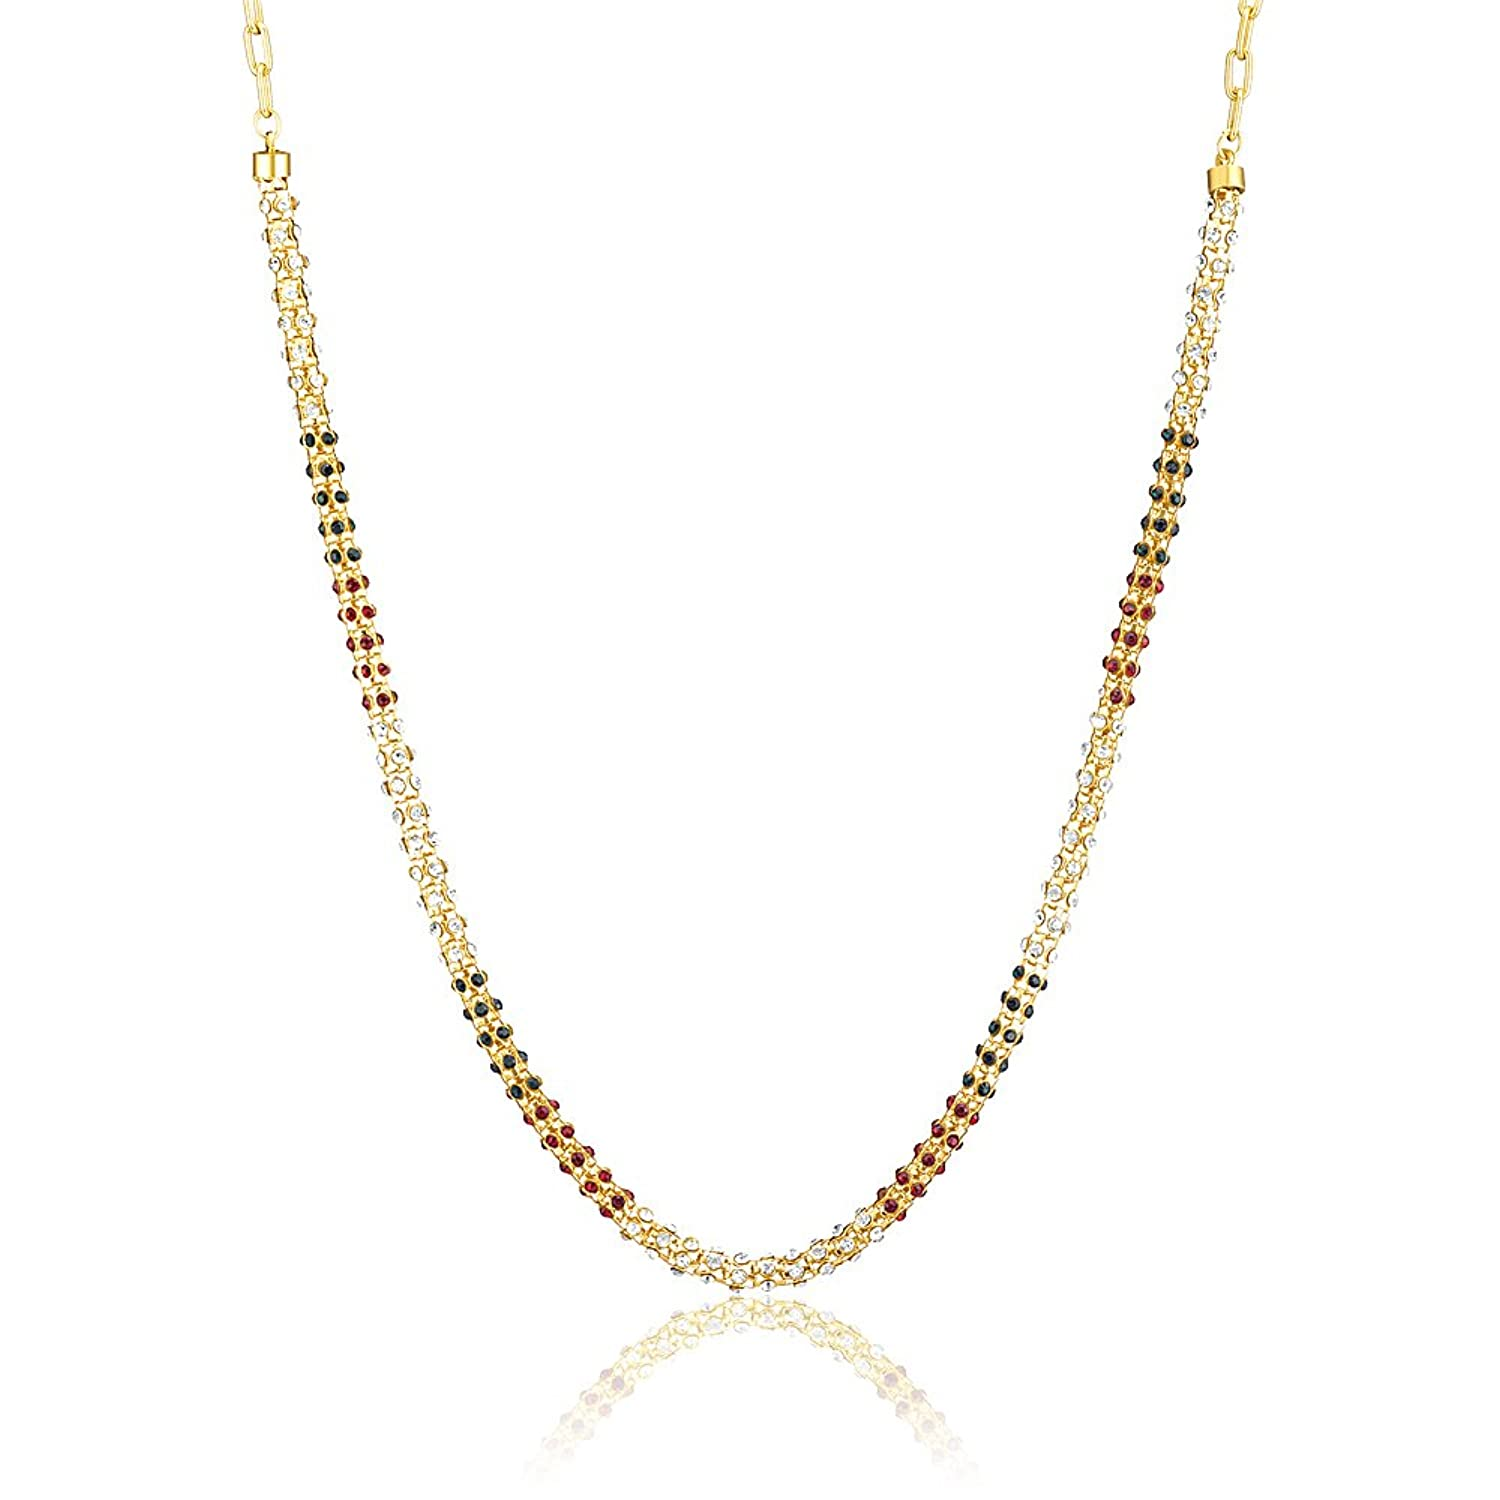 Donna Traditional Ethnic Gold Plated Diamond drops Chain with Crystals For Women CN27001G By Amazon @ Rs.319